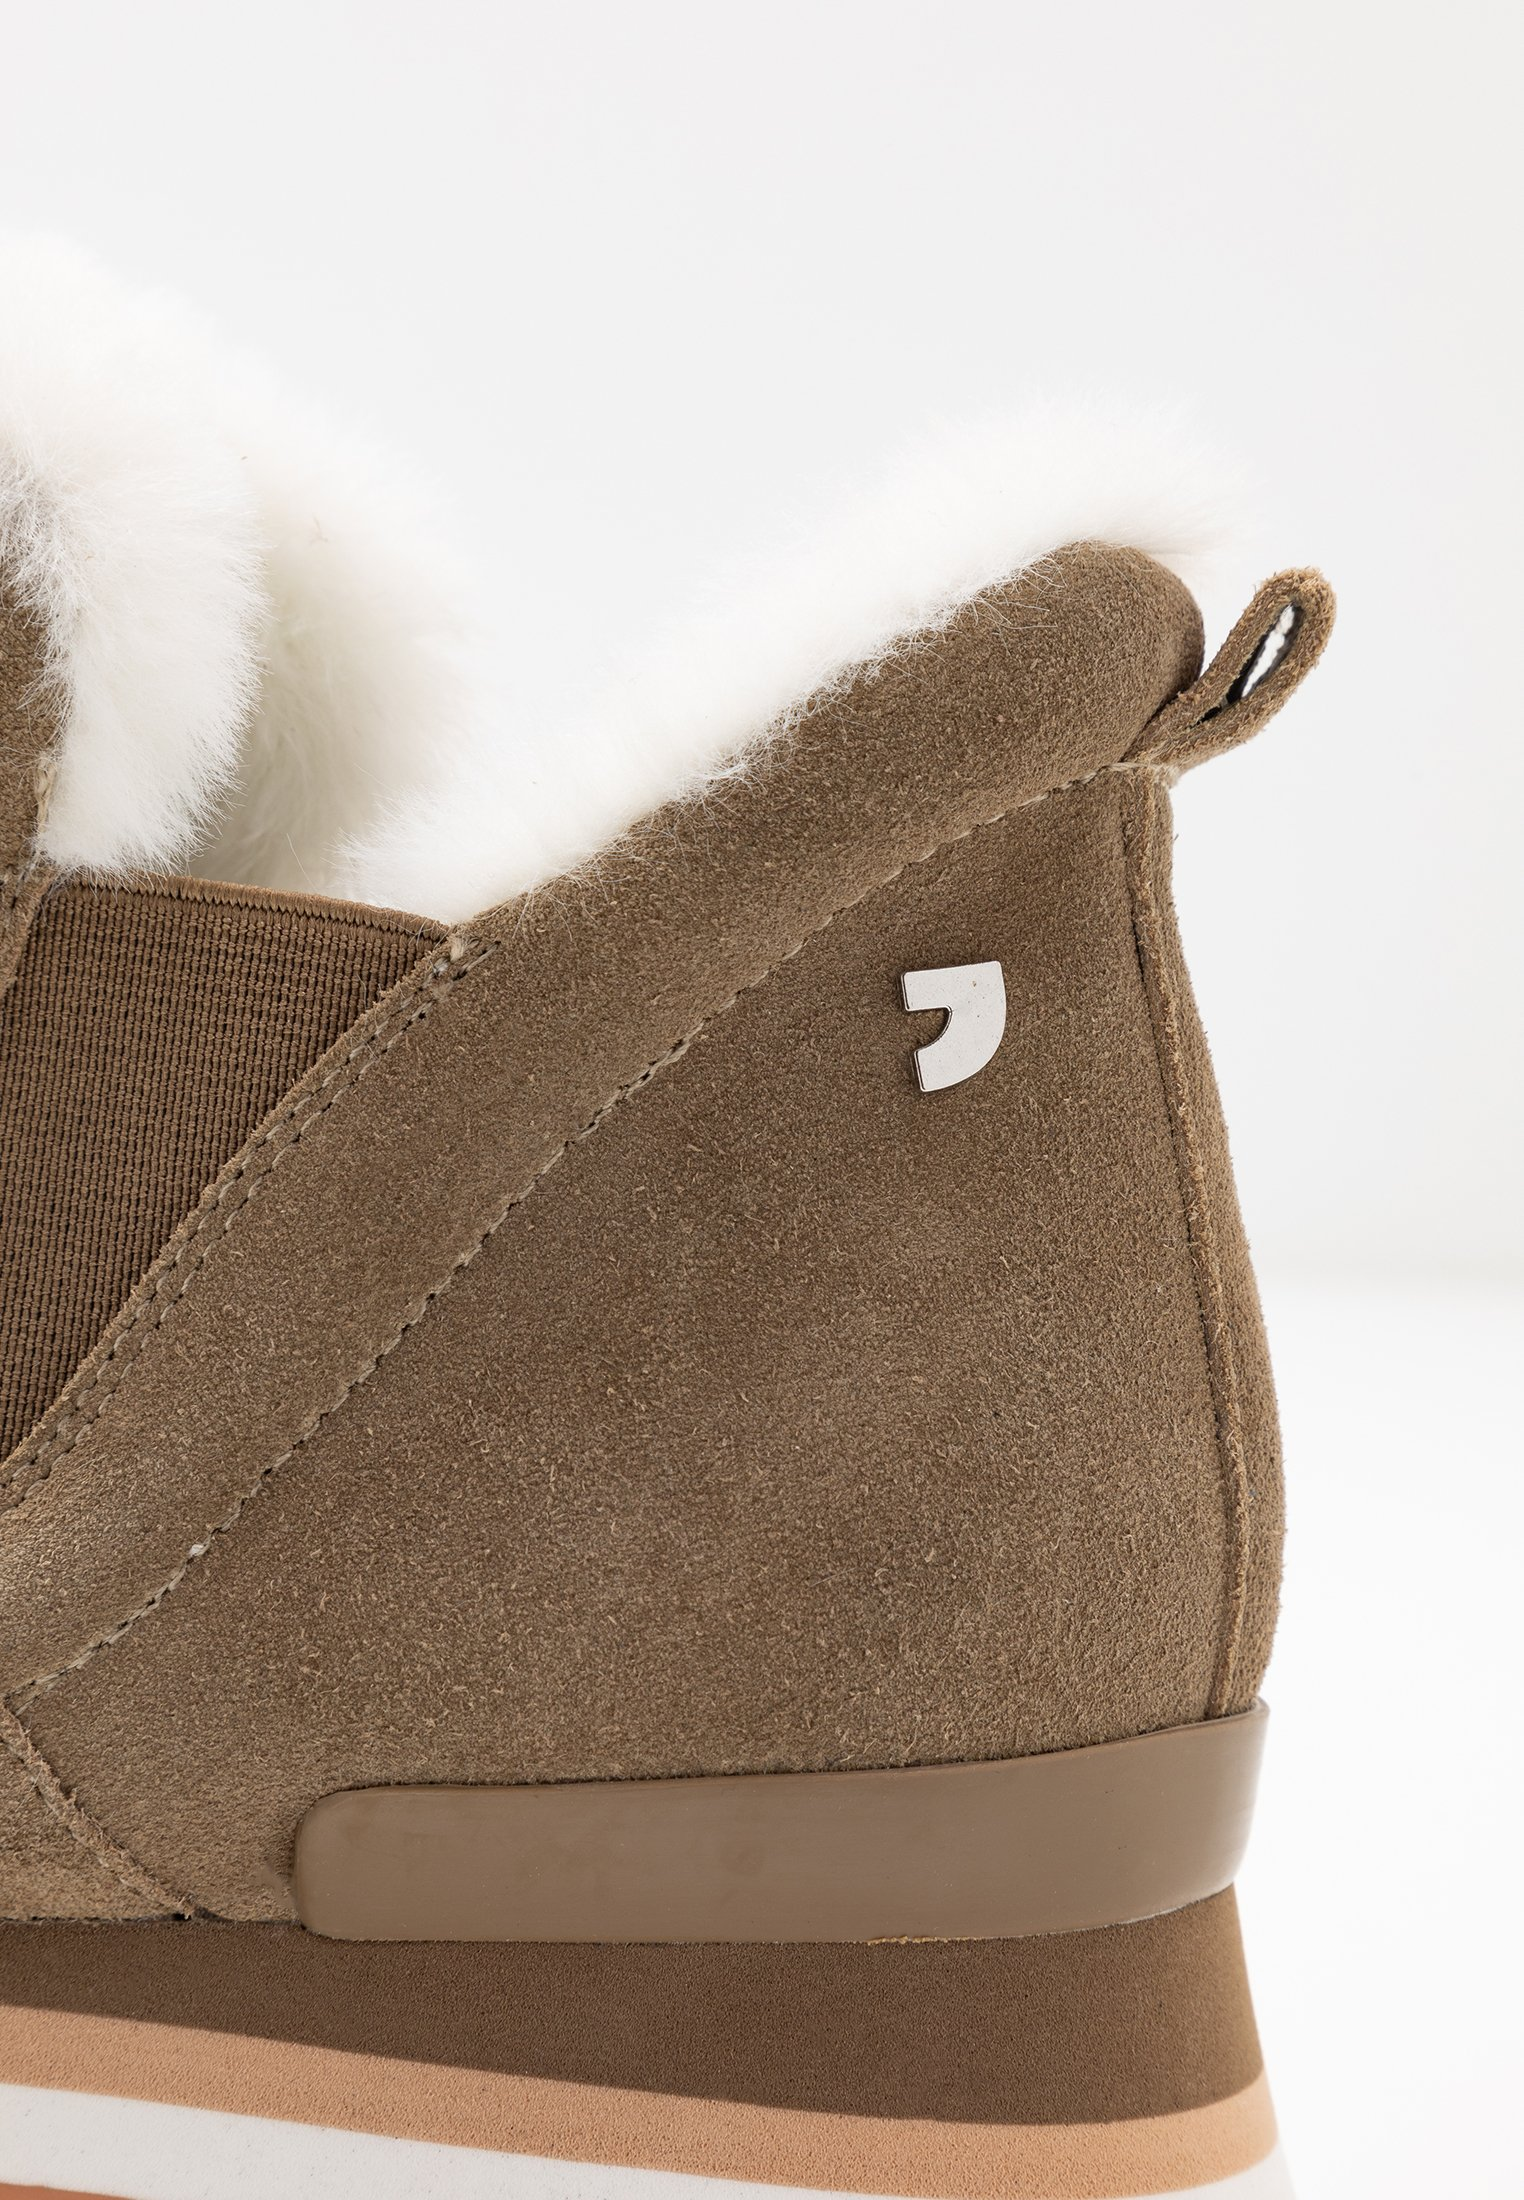 Gioseppo Ankle Boot - Sand/gold